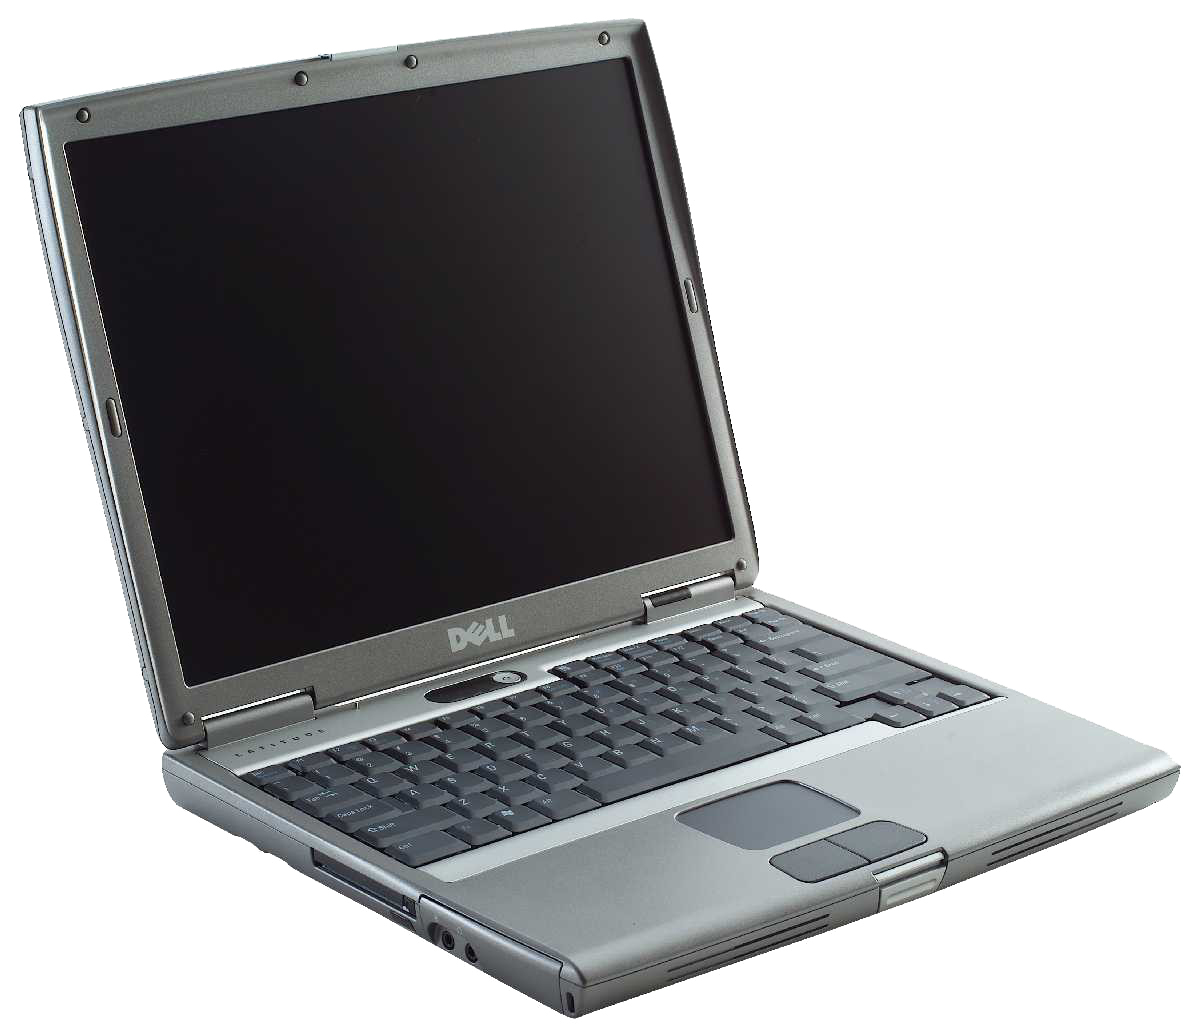 Dell Latitude D600 / 1,6GHz / 1GB / 80GB HDD / WINXP